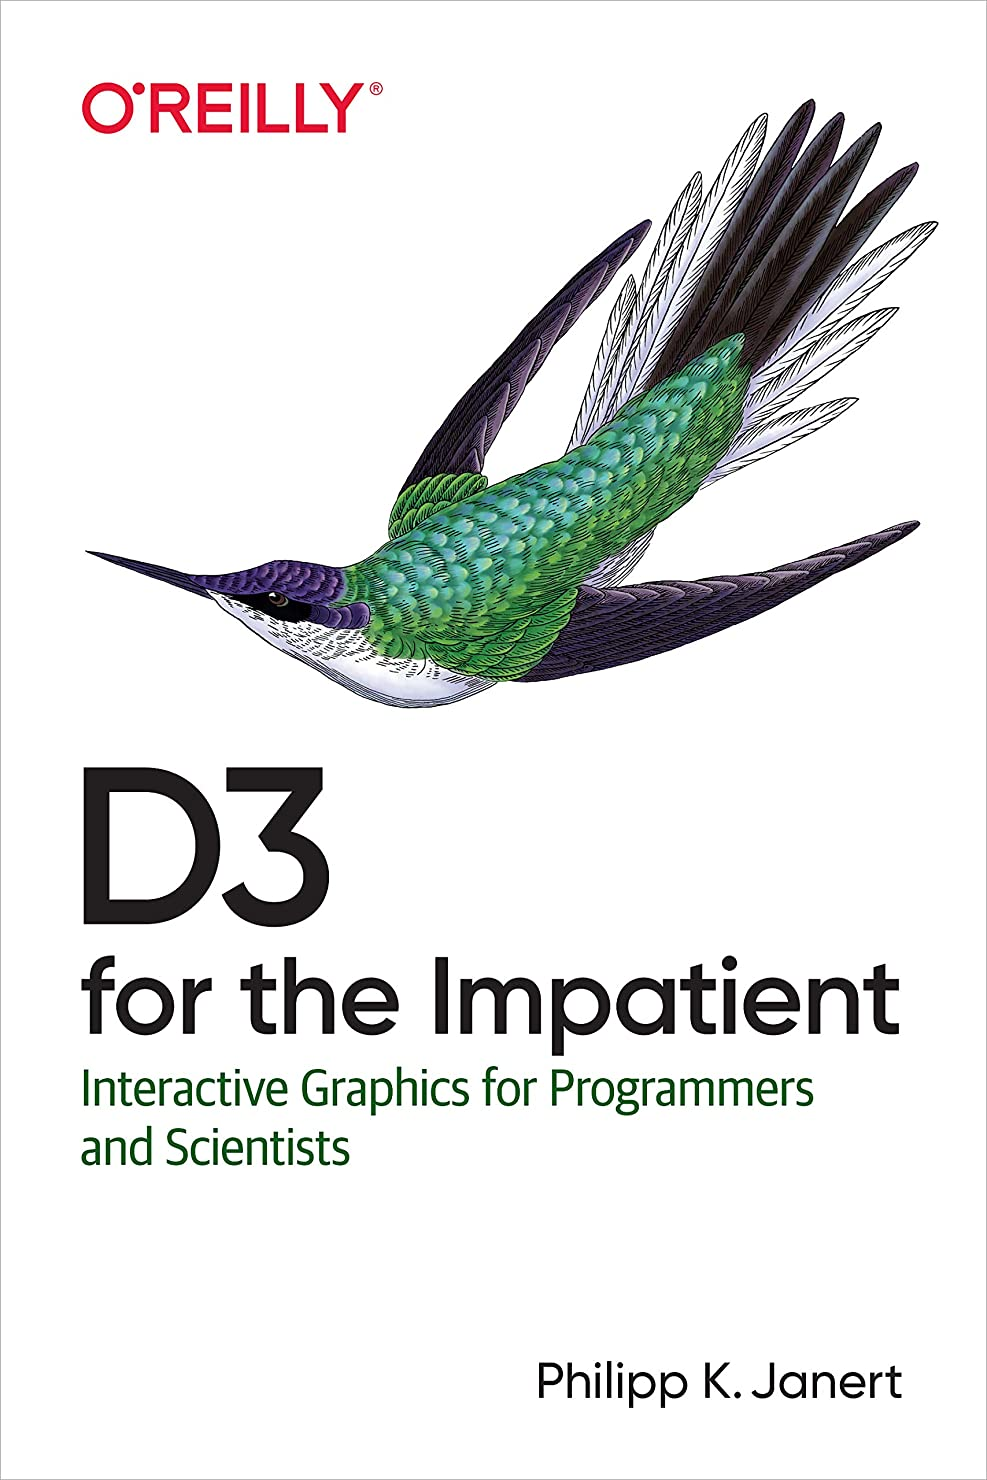 アグネスグレイ定期的ファンタジーD3 for the Impatient: Interactive Graphics for Programmers and Scientists (English Edition)